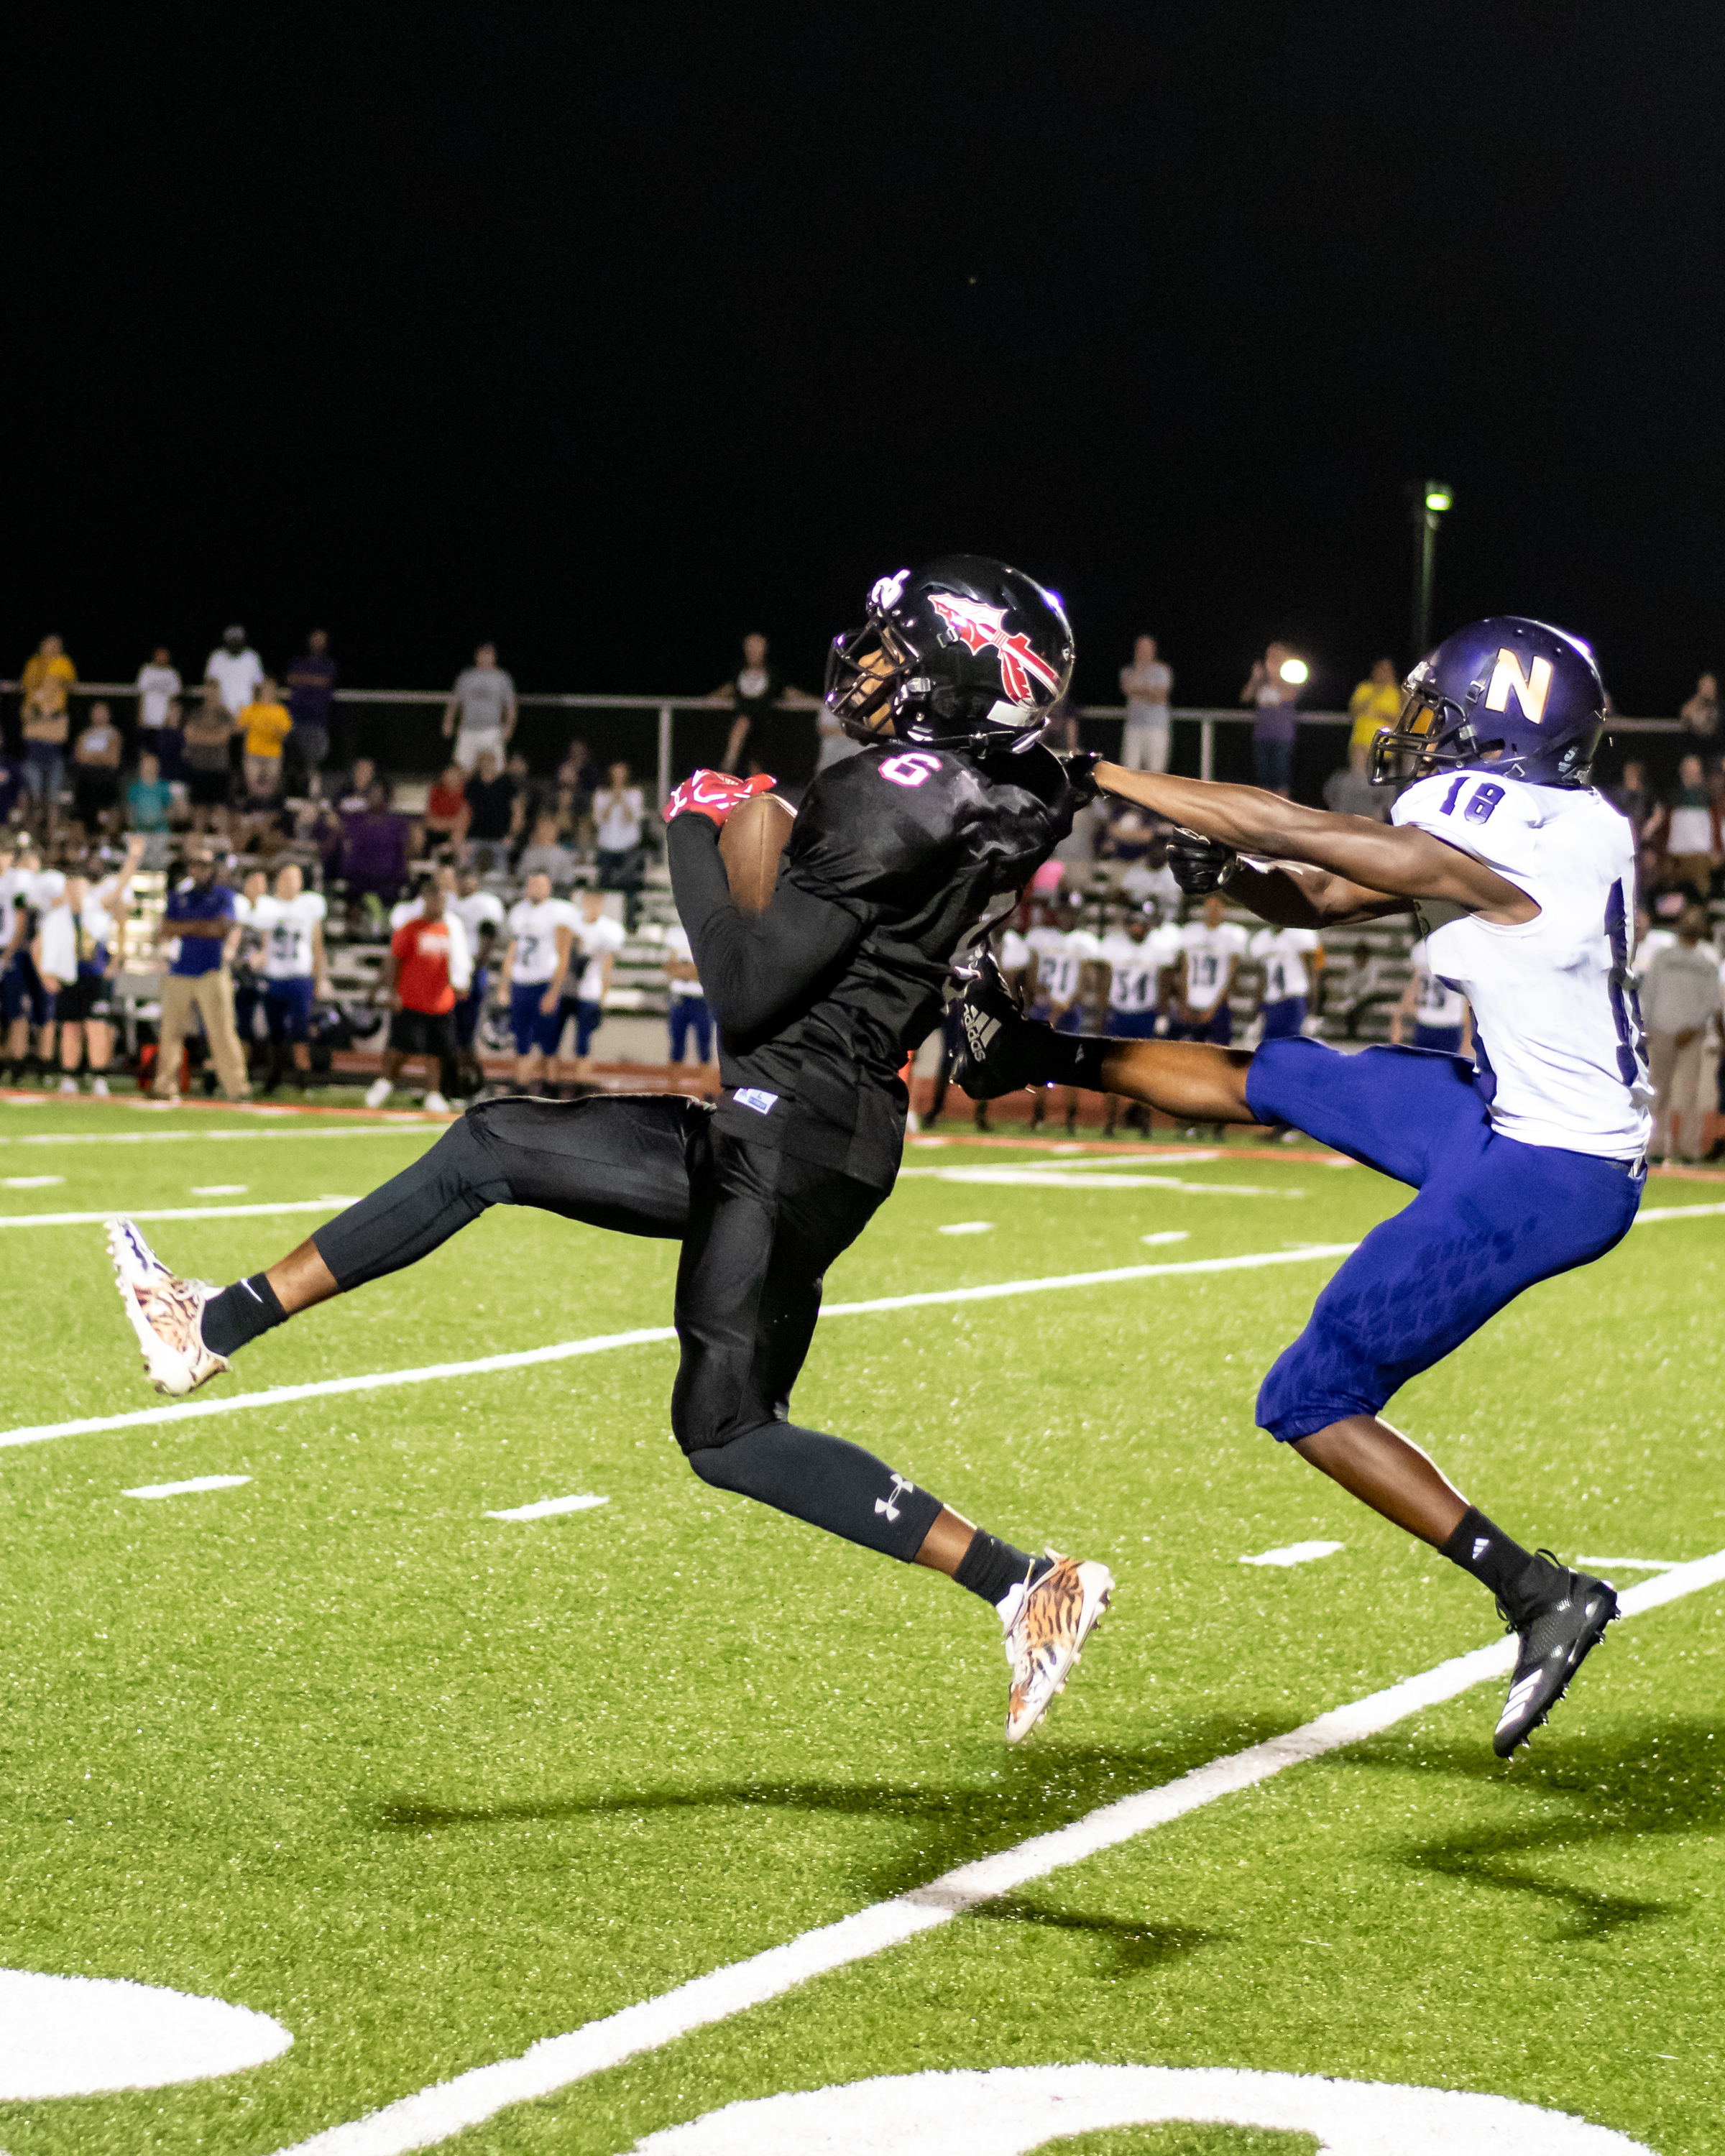 Interception on Homecoming